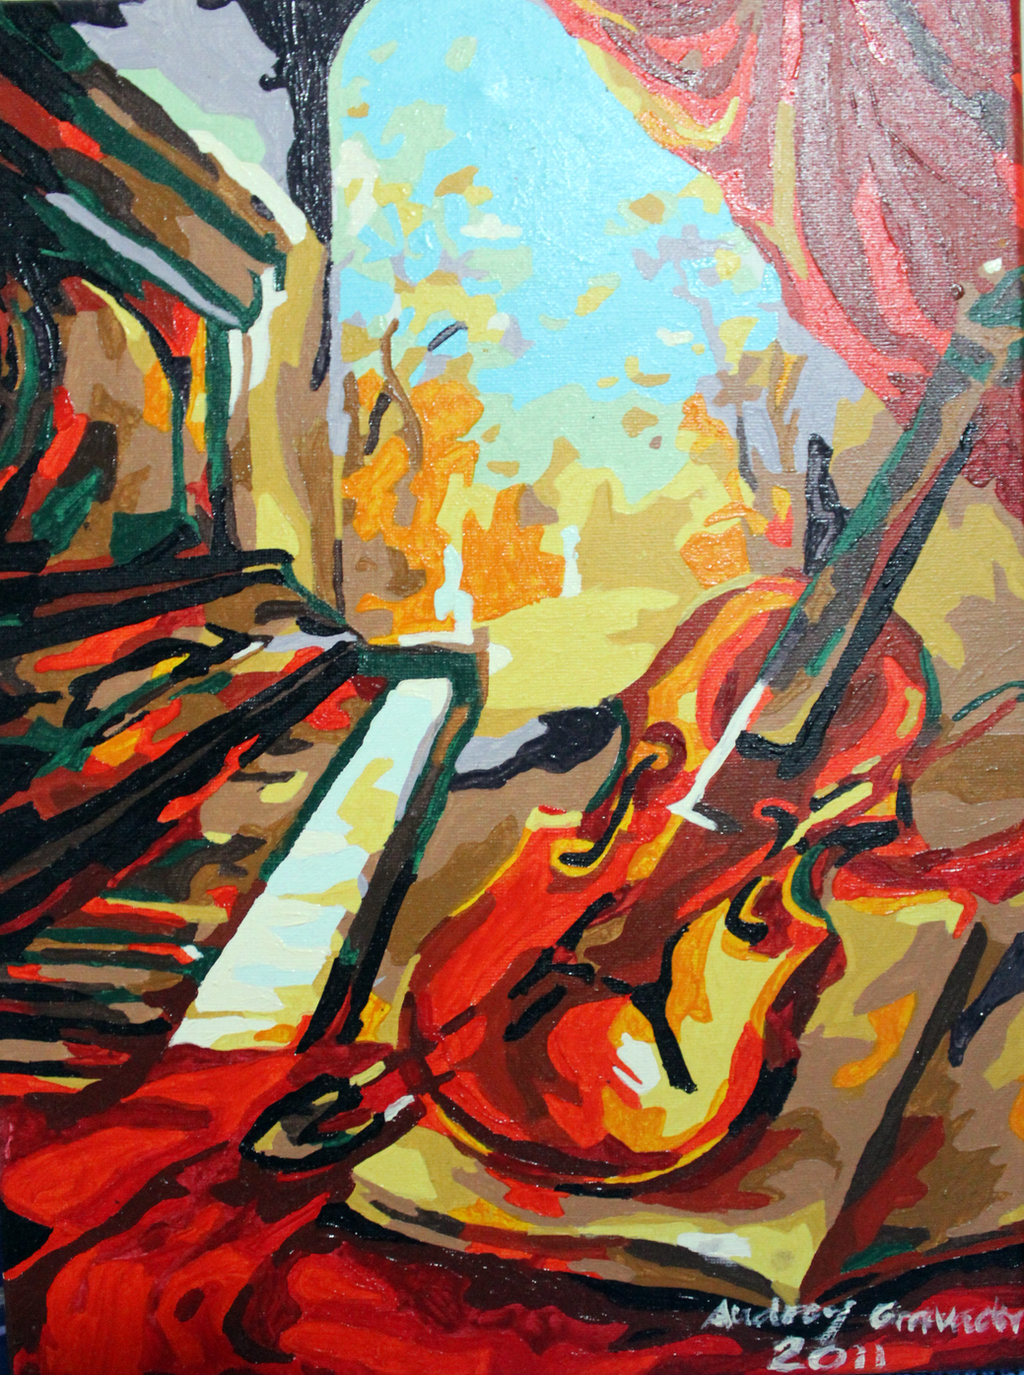 Piano and violin acrylic painting by gravadrey on deviantart for Acrylic art images